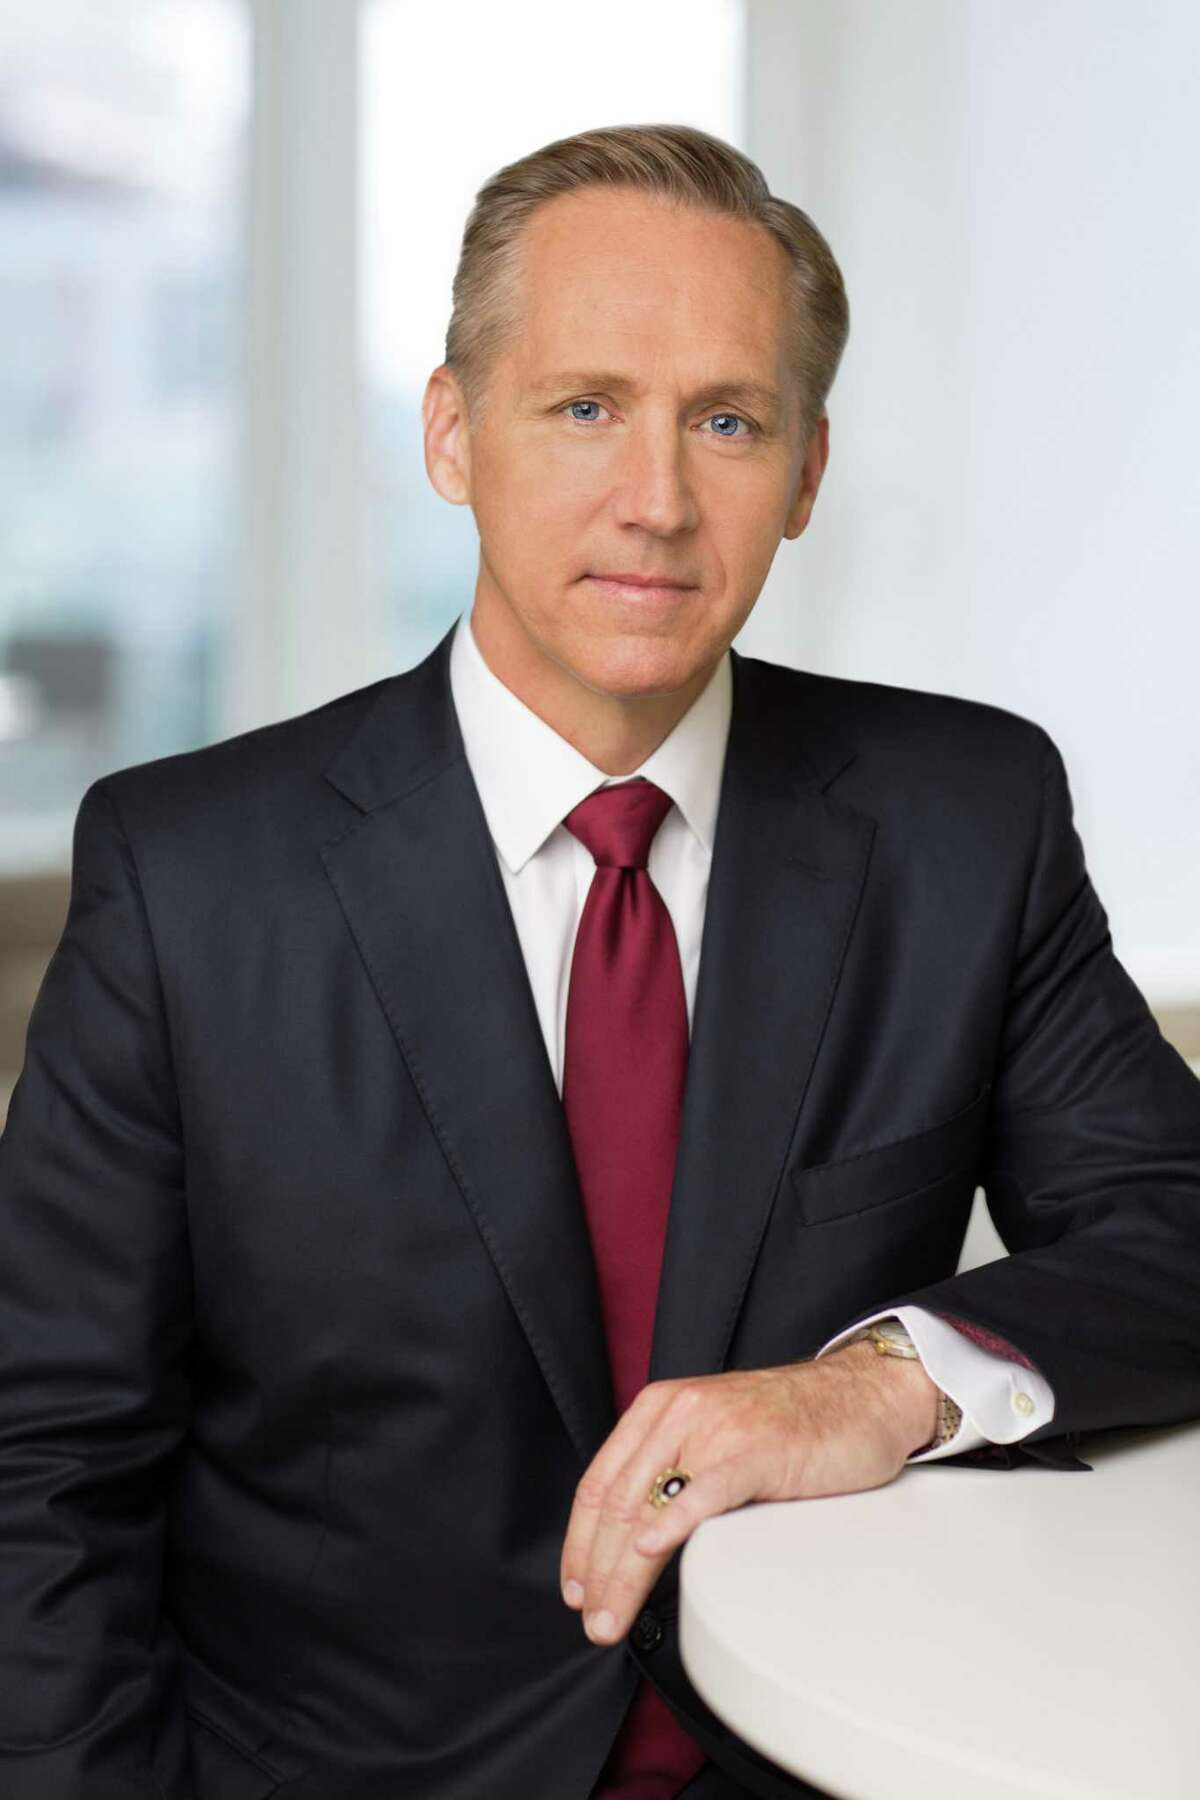 Jeffrey W. Martin is chairman and chief executive officer of Sempra Energy. Martin has served as Sempra Energy?'s chief executive officer since May 2018 and, as chairman, since December 2018.